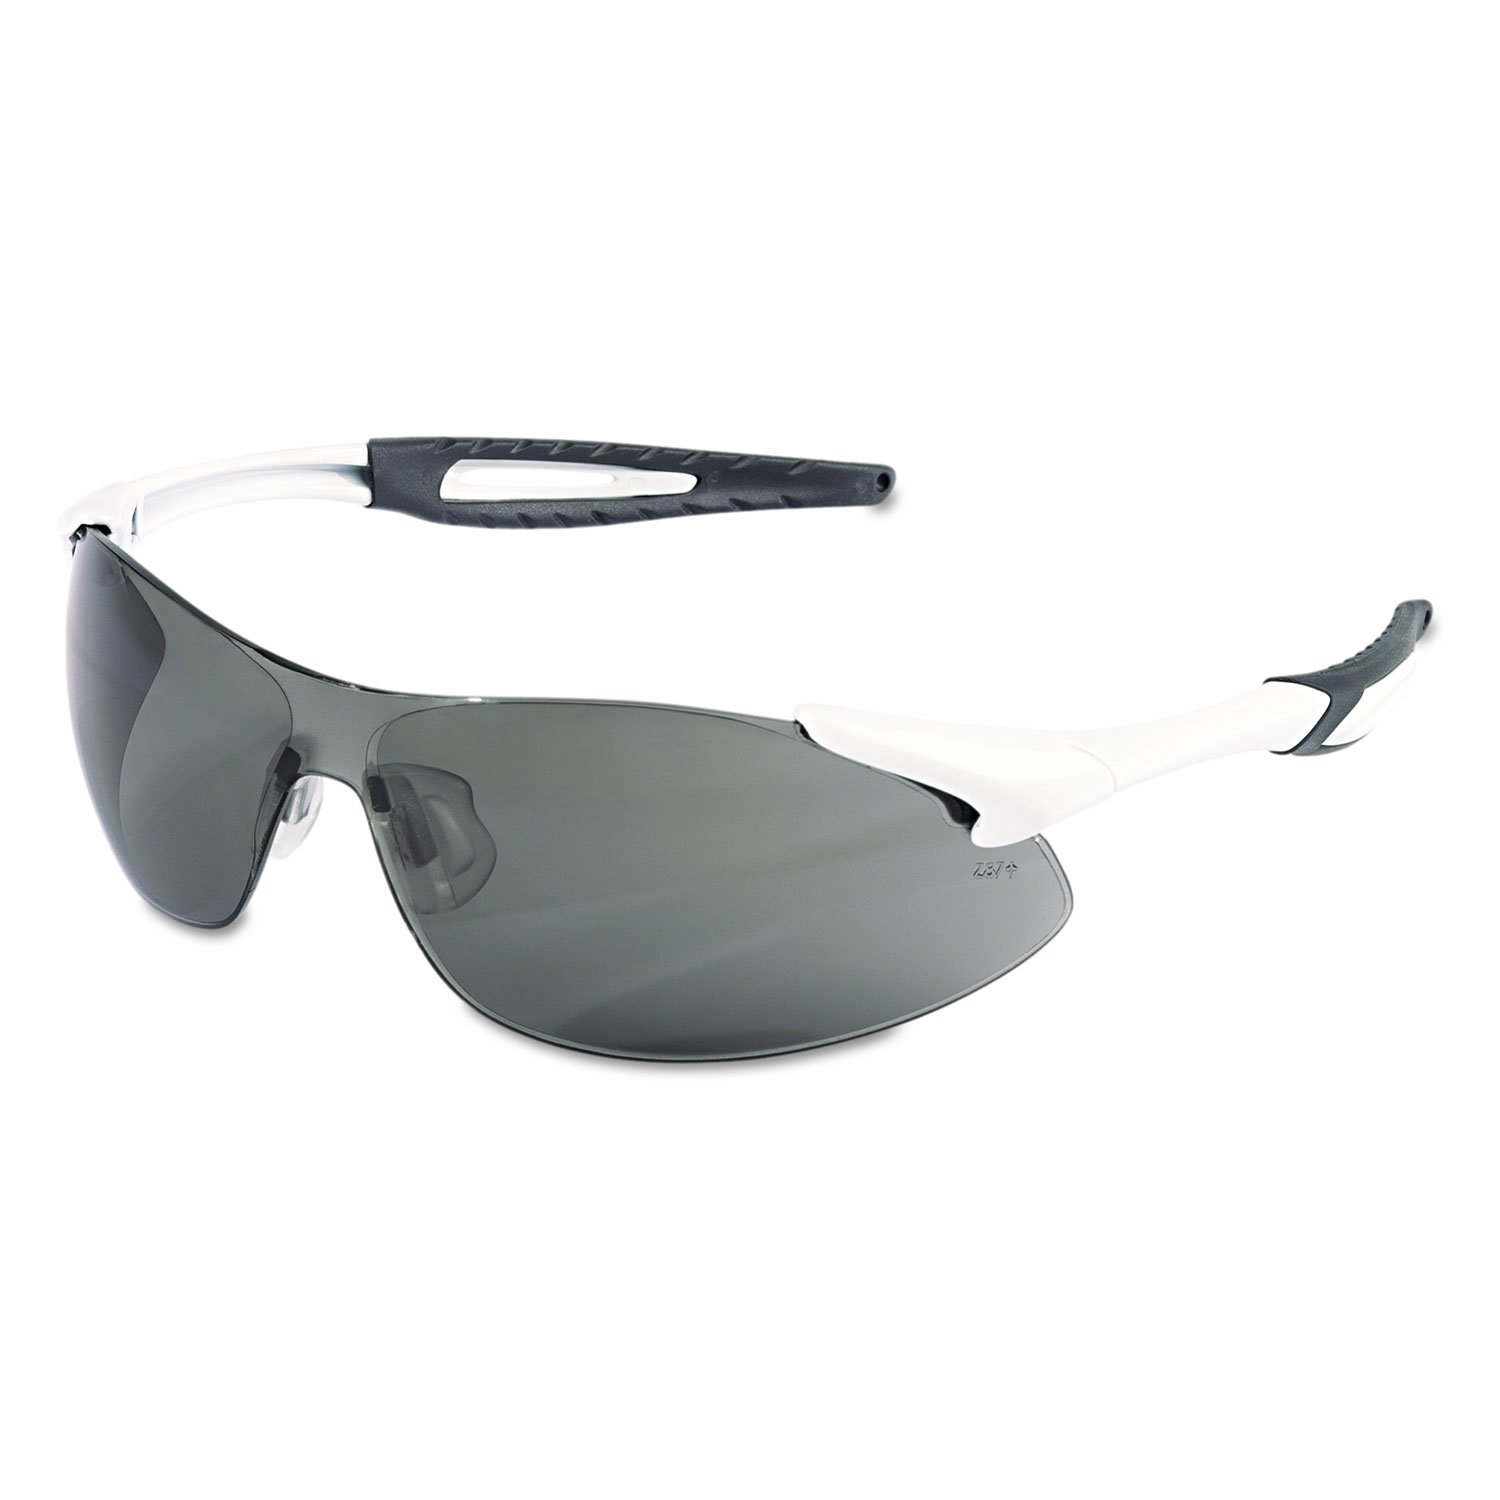 Inertia Safety Glasses, White Frame, Gray Anti-Fog Lens, One Size Tools Equipment Hand Tools